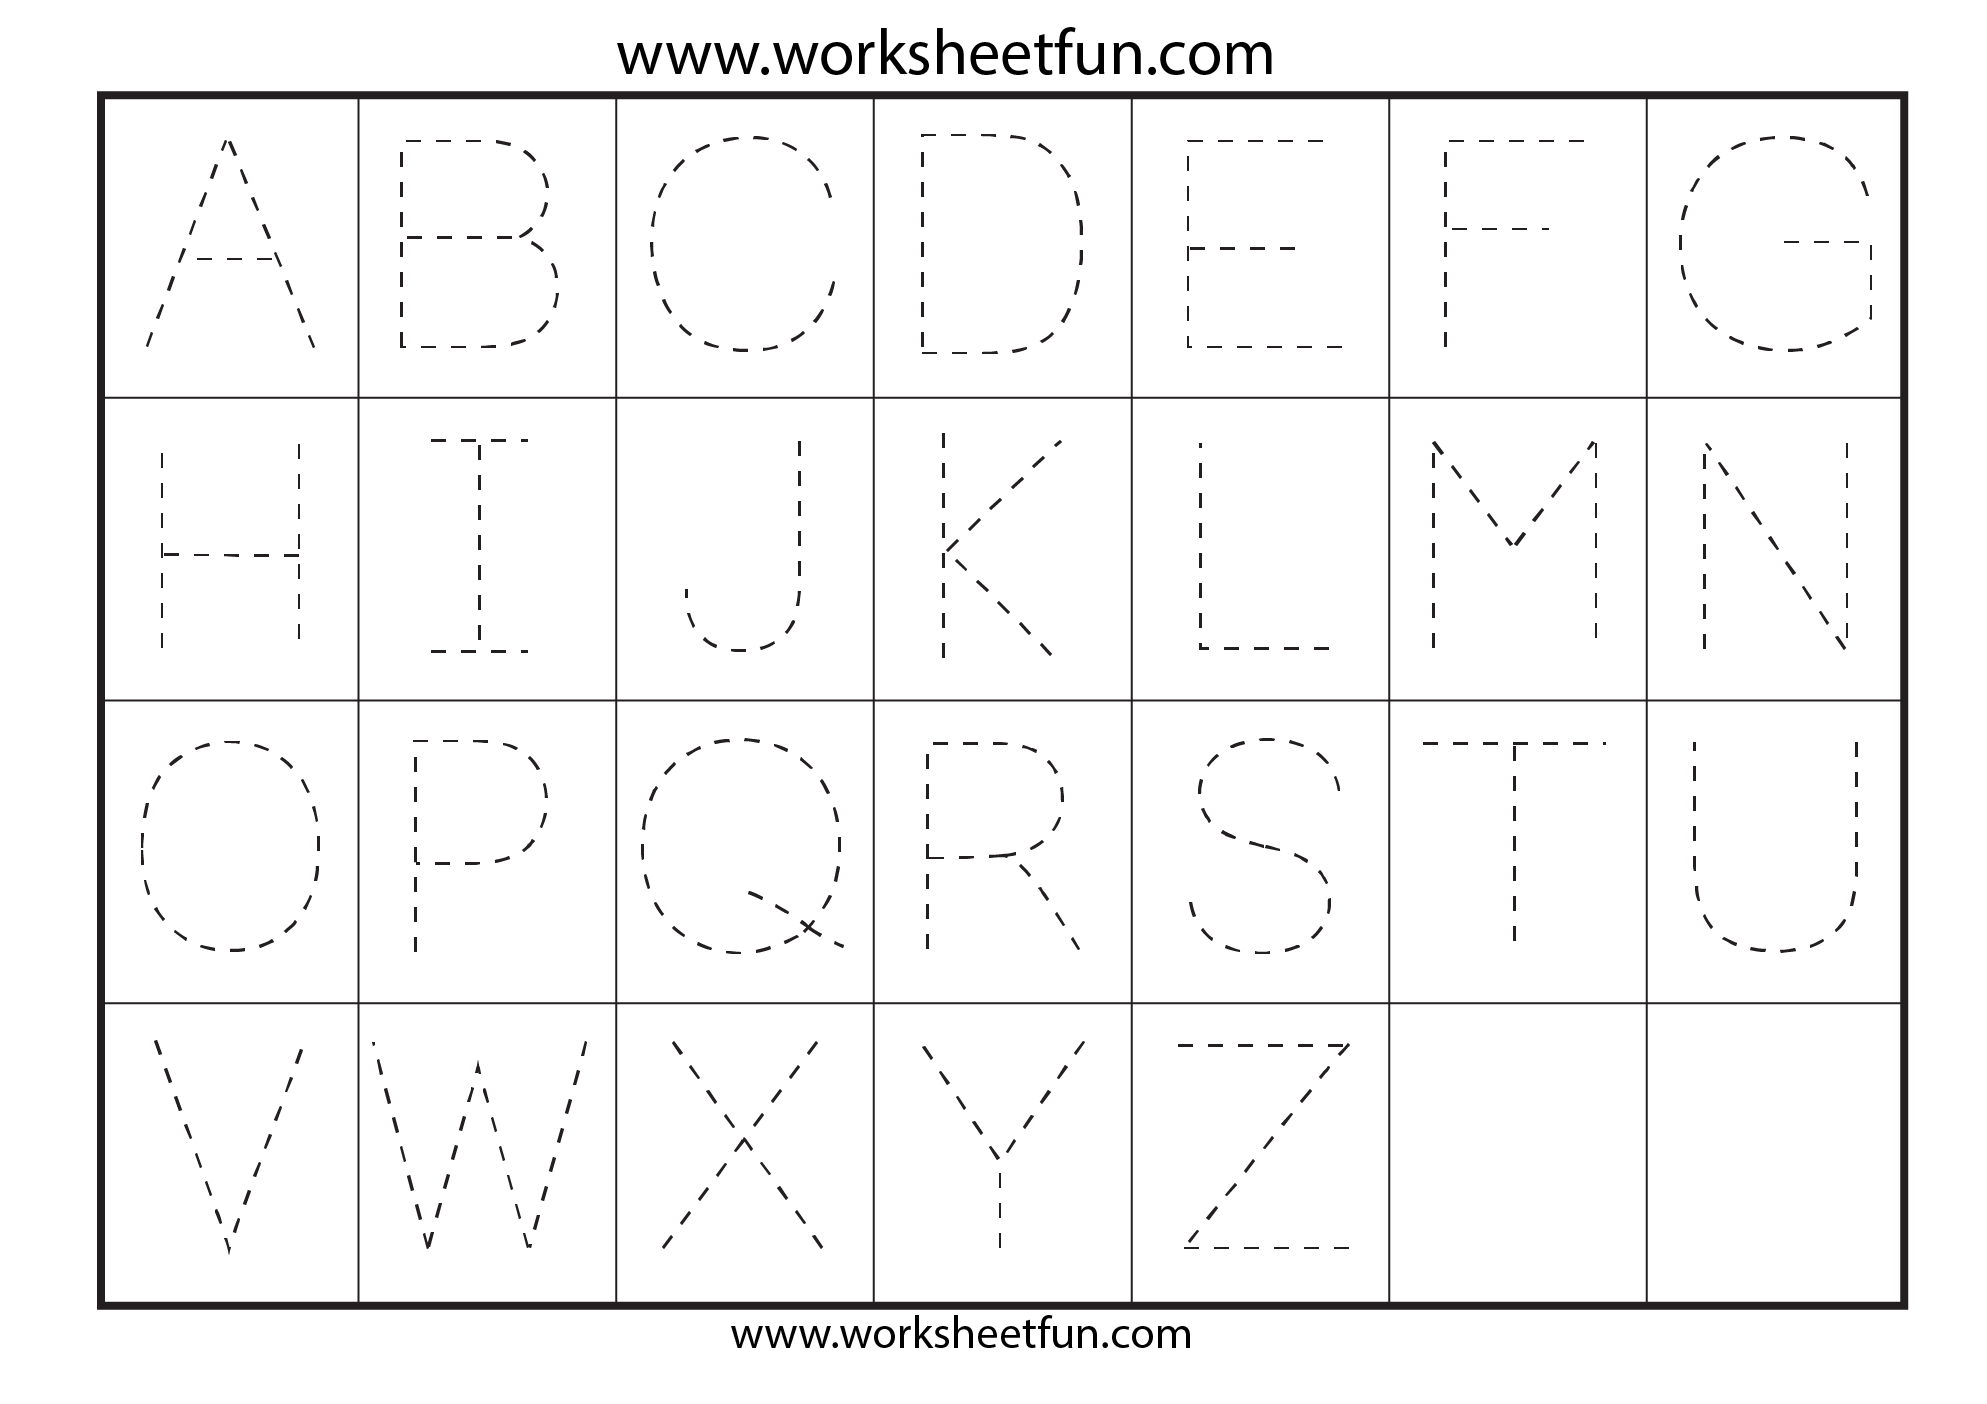 Worksheet Tracing Sheets For Alphabet Wosenly Free Worksheet – Alphabet Tracing Worksheets